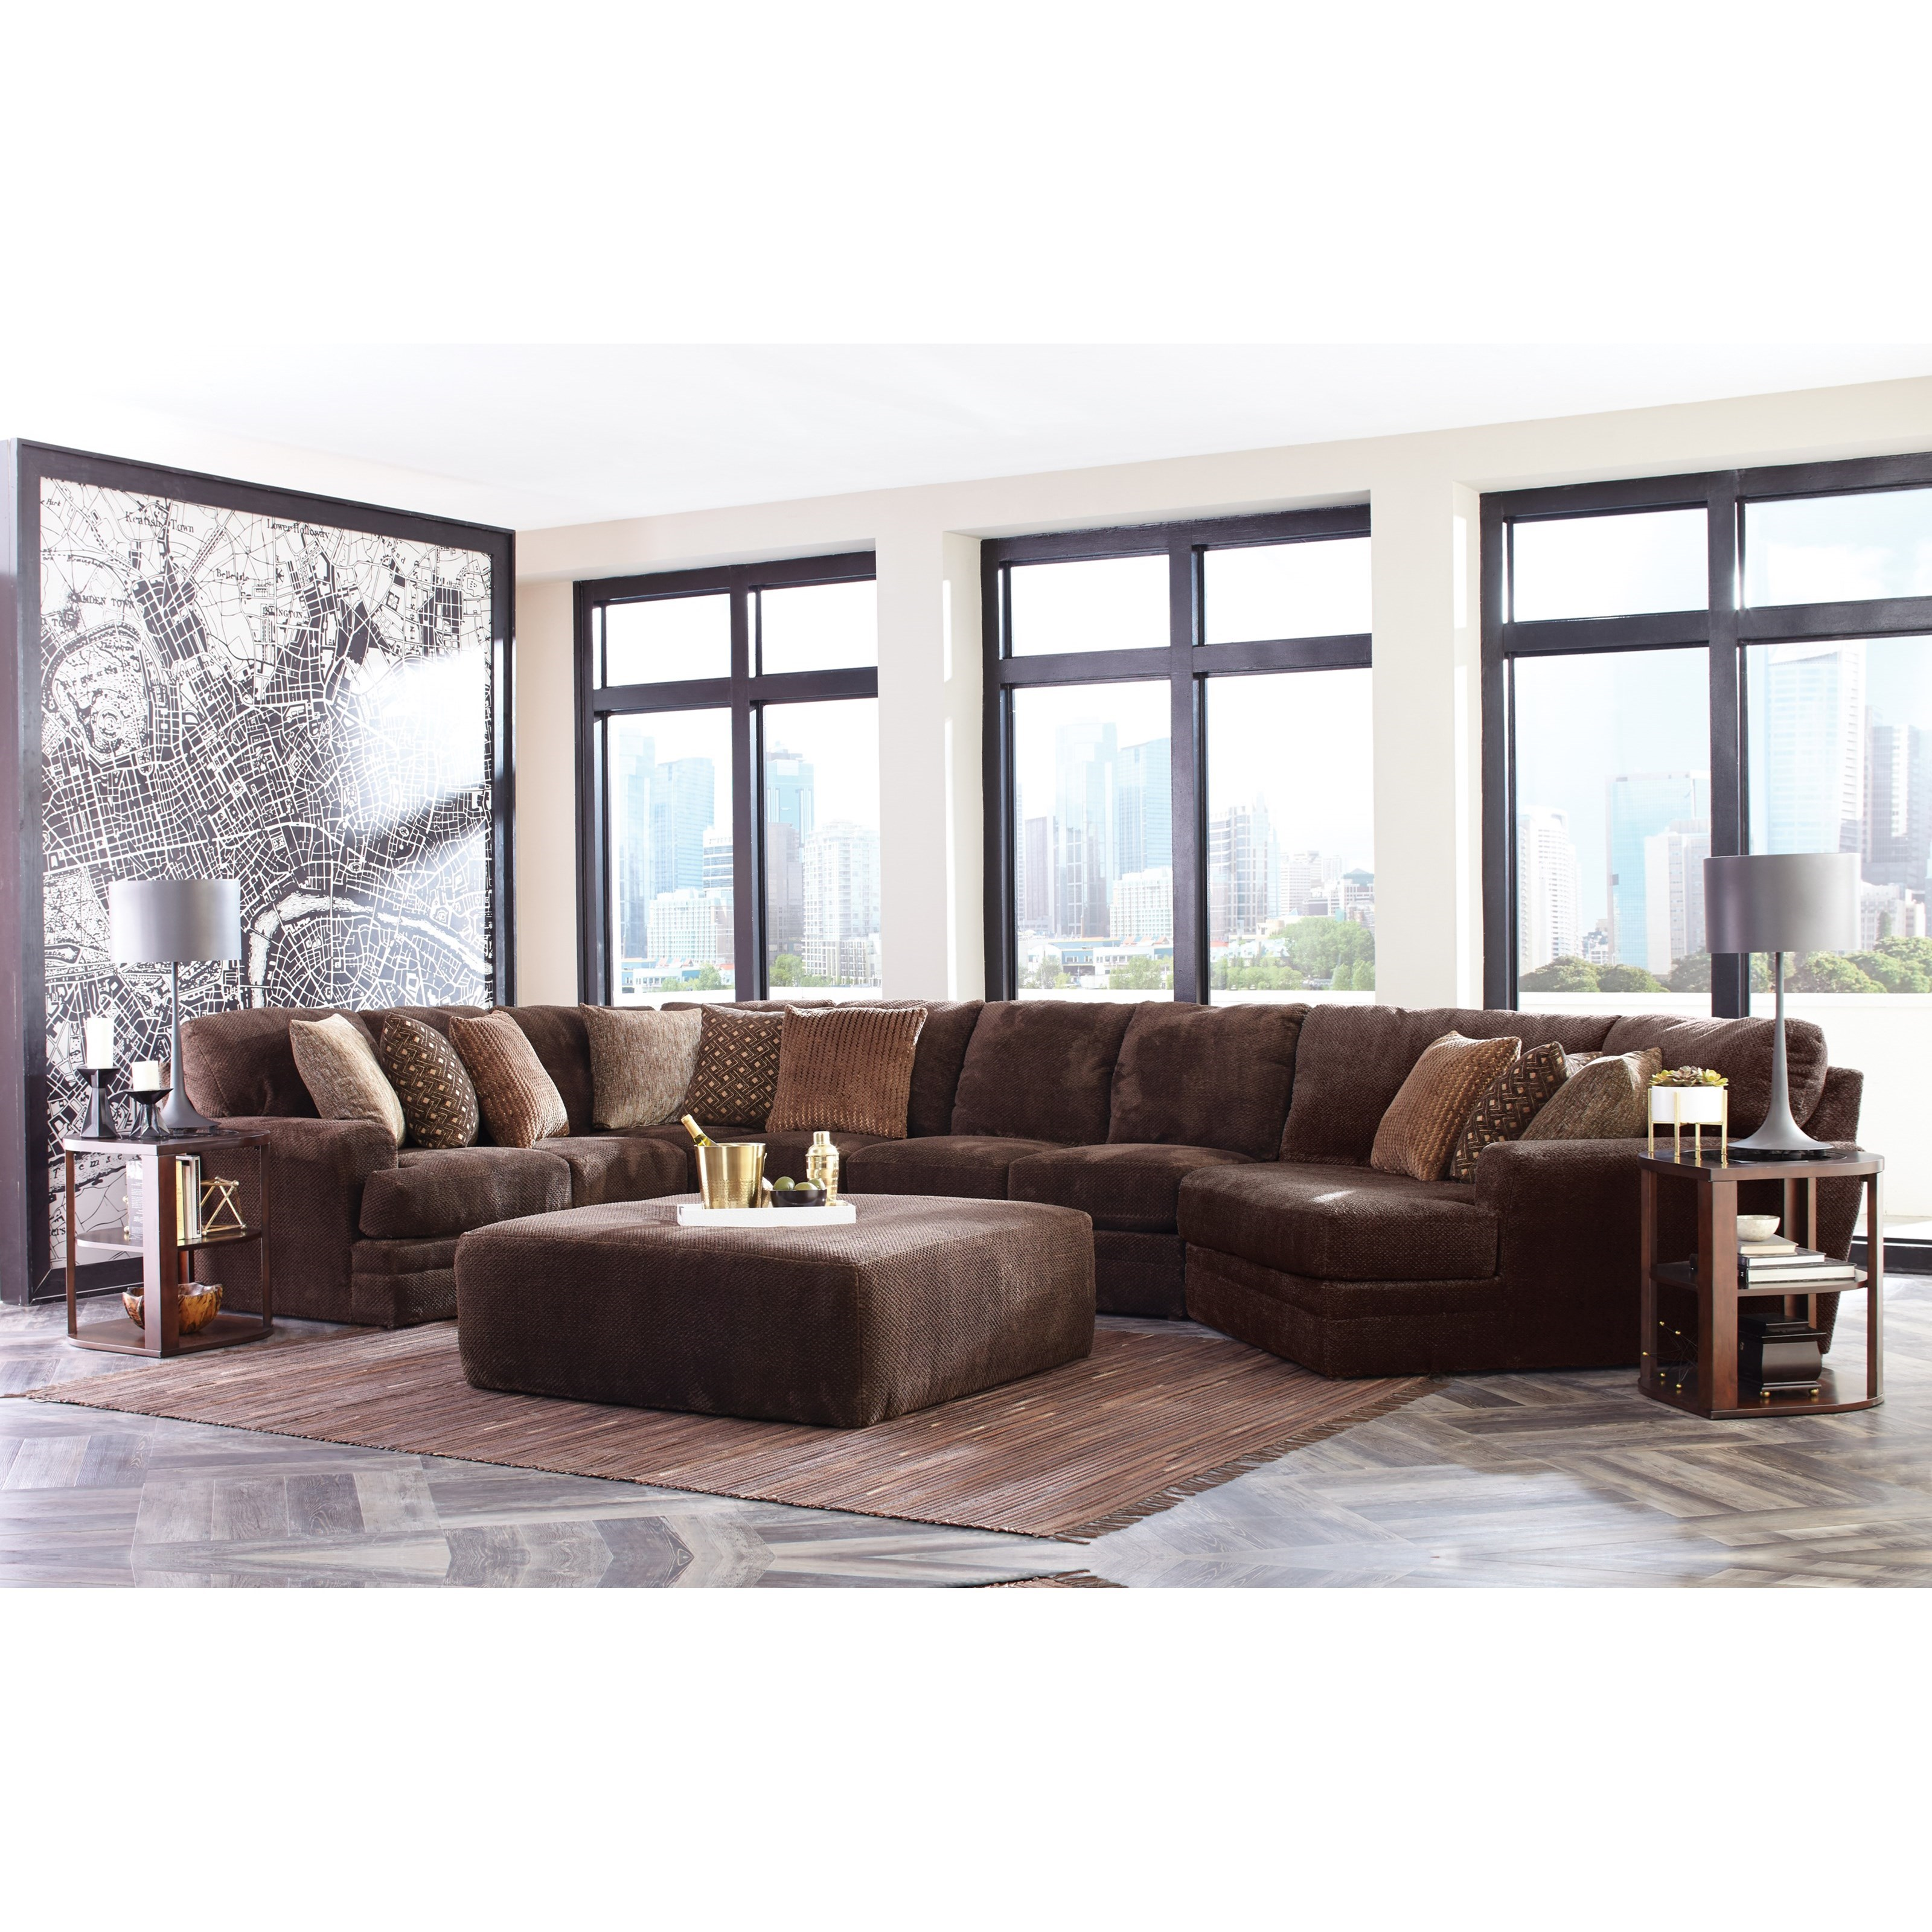 Mammoth 4 Piece Sectional by Jackson Furniture at Johnny Janosik